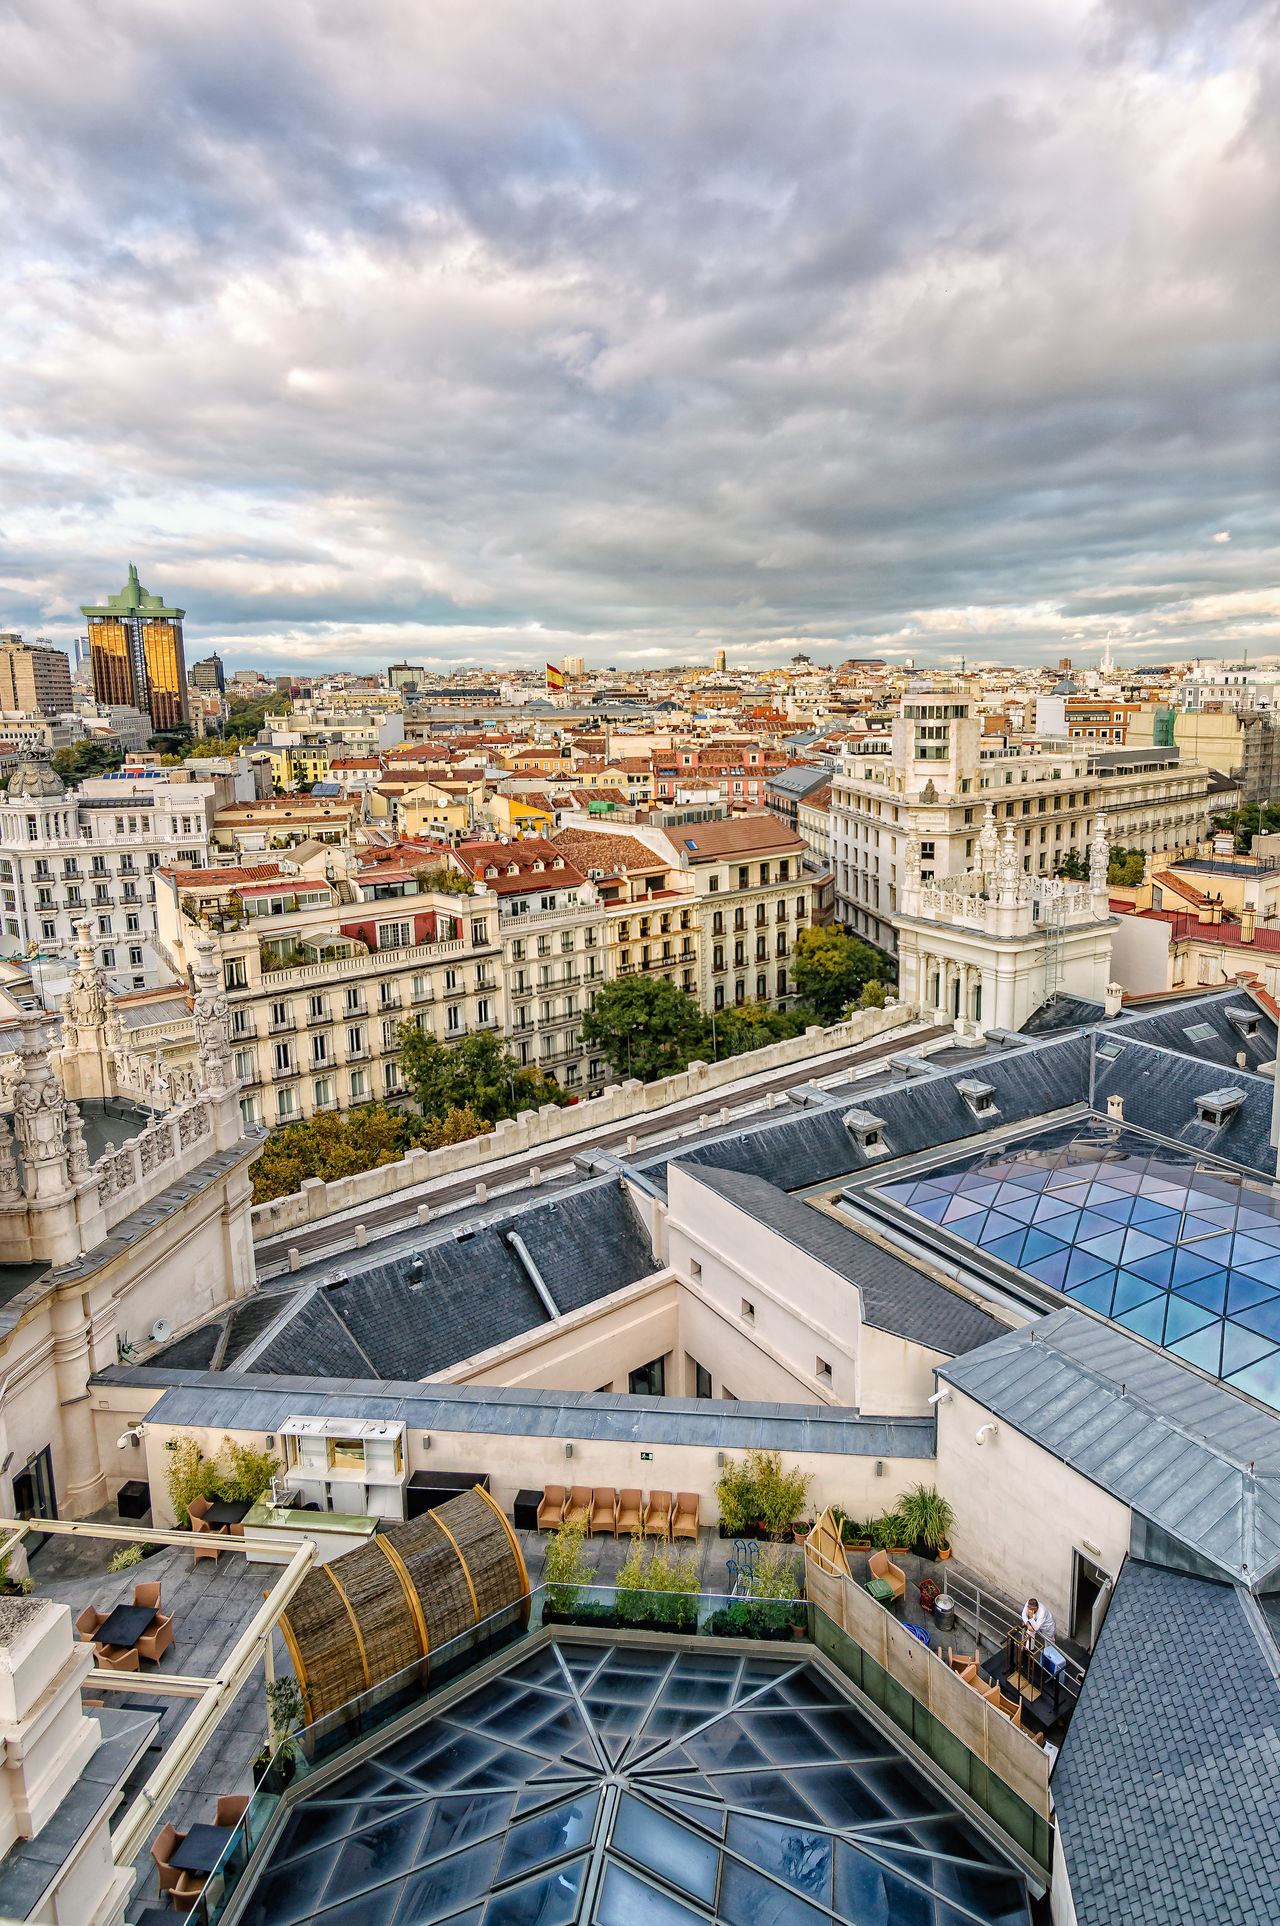 Madrid skyline from town hall at sunset Architecture Building Terrace Capital Cities  Cibeles City City City Life Cityscape Cityscape Day European  High Angle View Madrid Modern No People Outdoors Sky Skylight SPAIN Sunset Travel Destinations Urban Urban Skyline Vacations